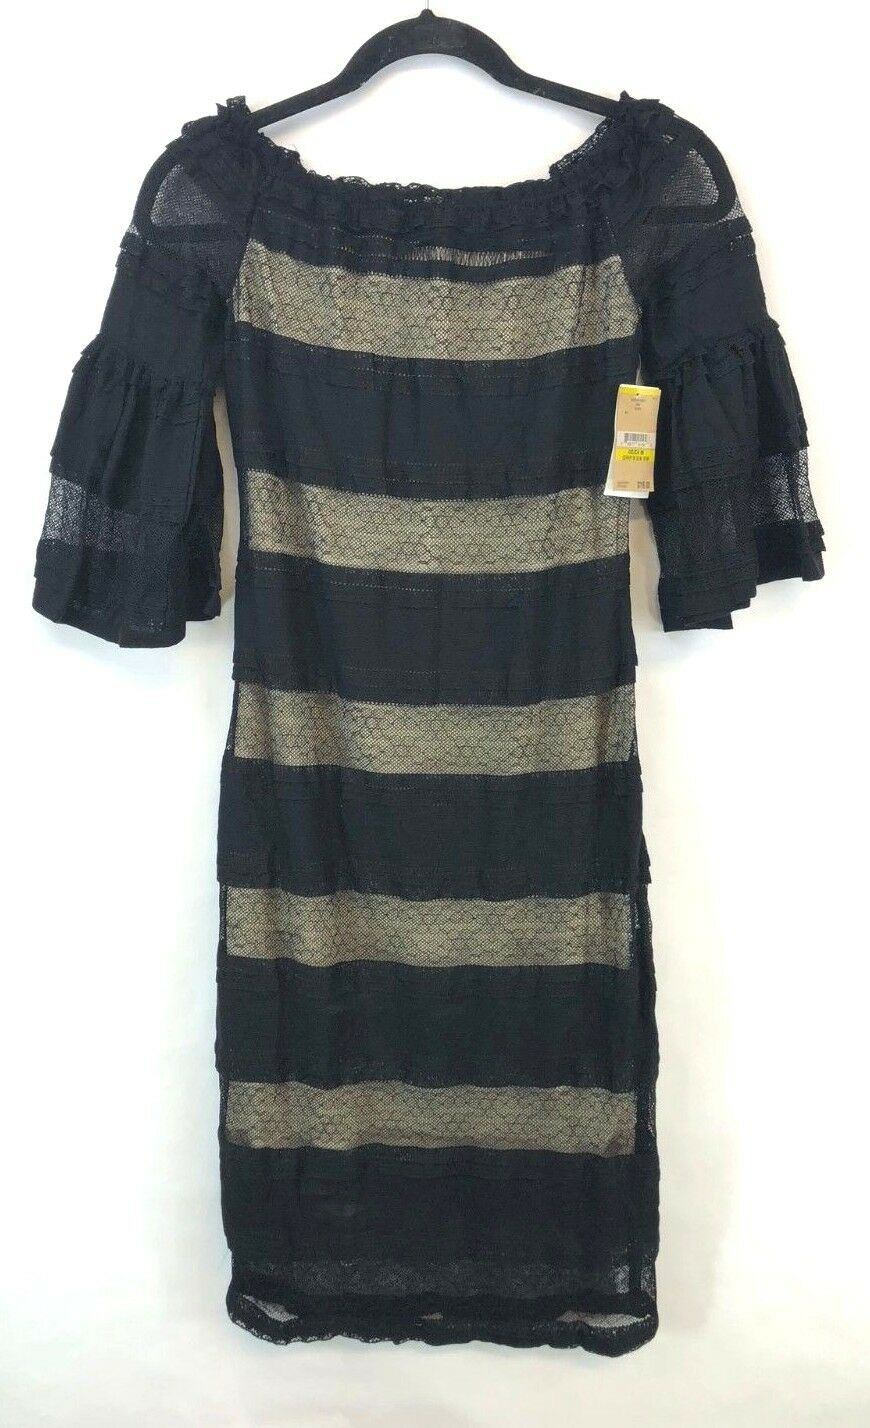 Rachel Roy Women's Lace Dress Size M New With Tags